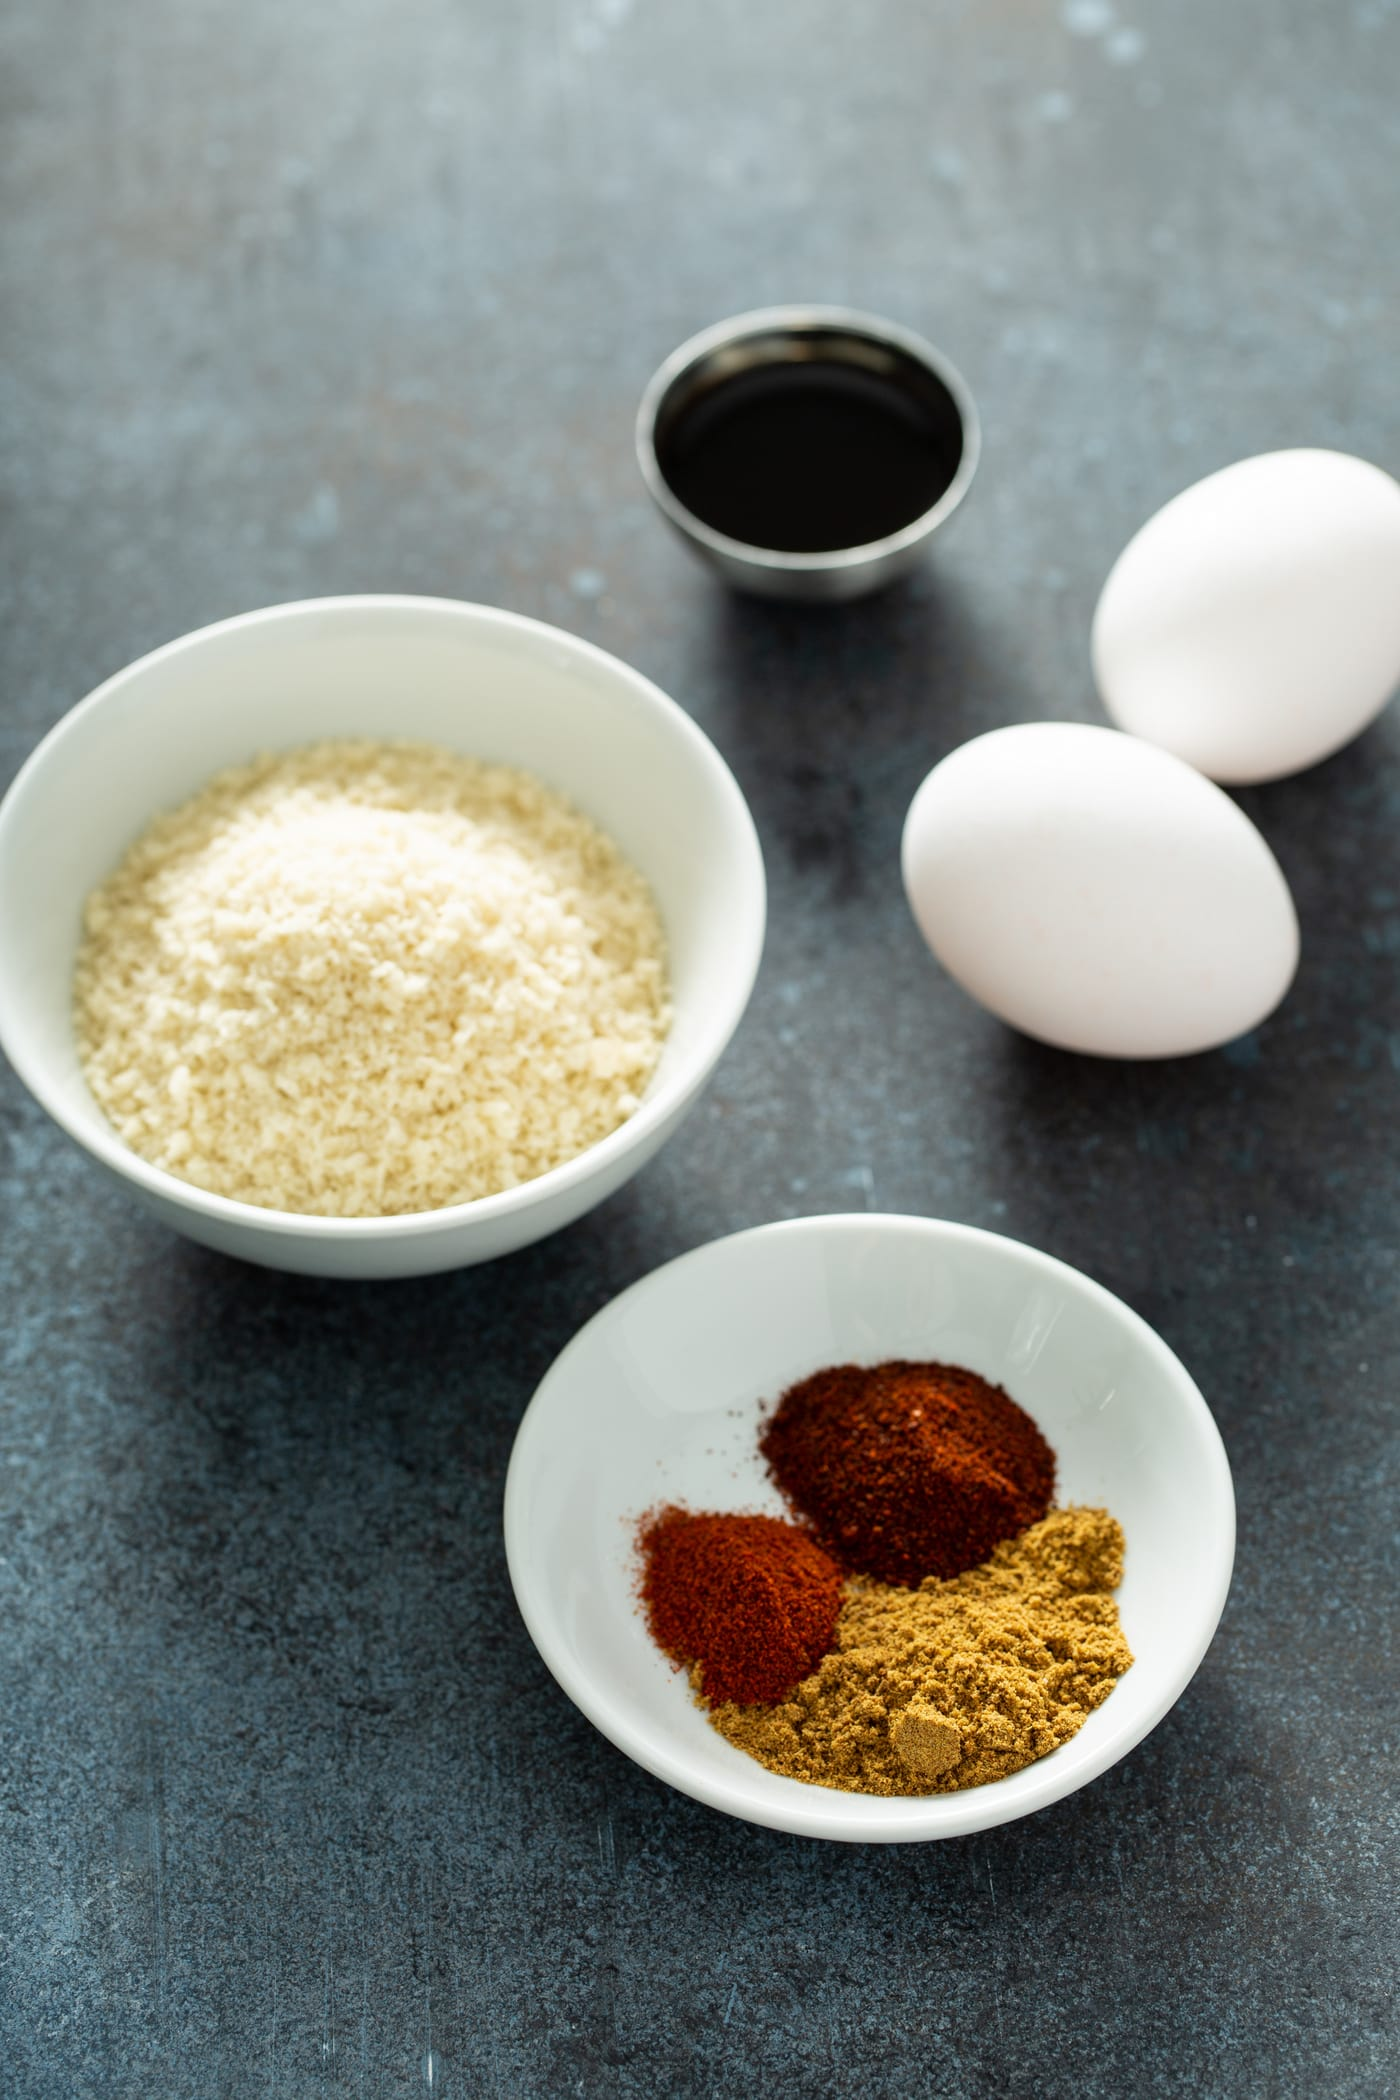 A white bowl with bread crumbs, a white bowl with cumin, paprika and chili powder, two white eggs, and a small container of Worcestershire Sauce.